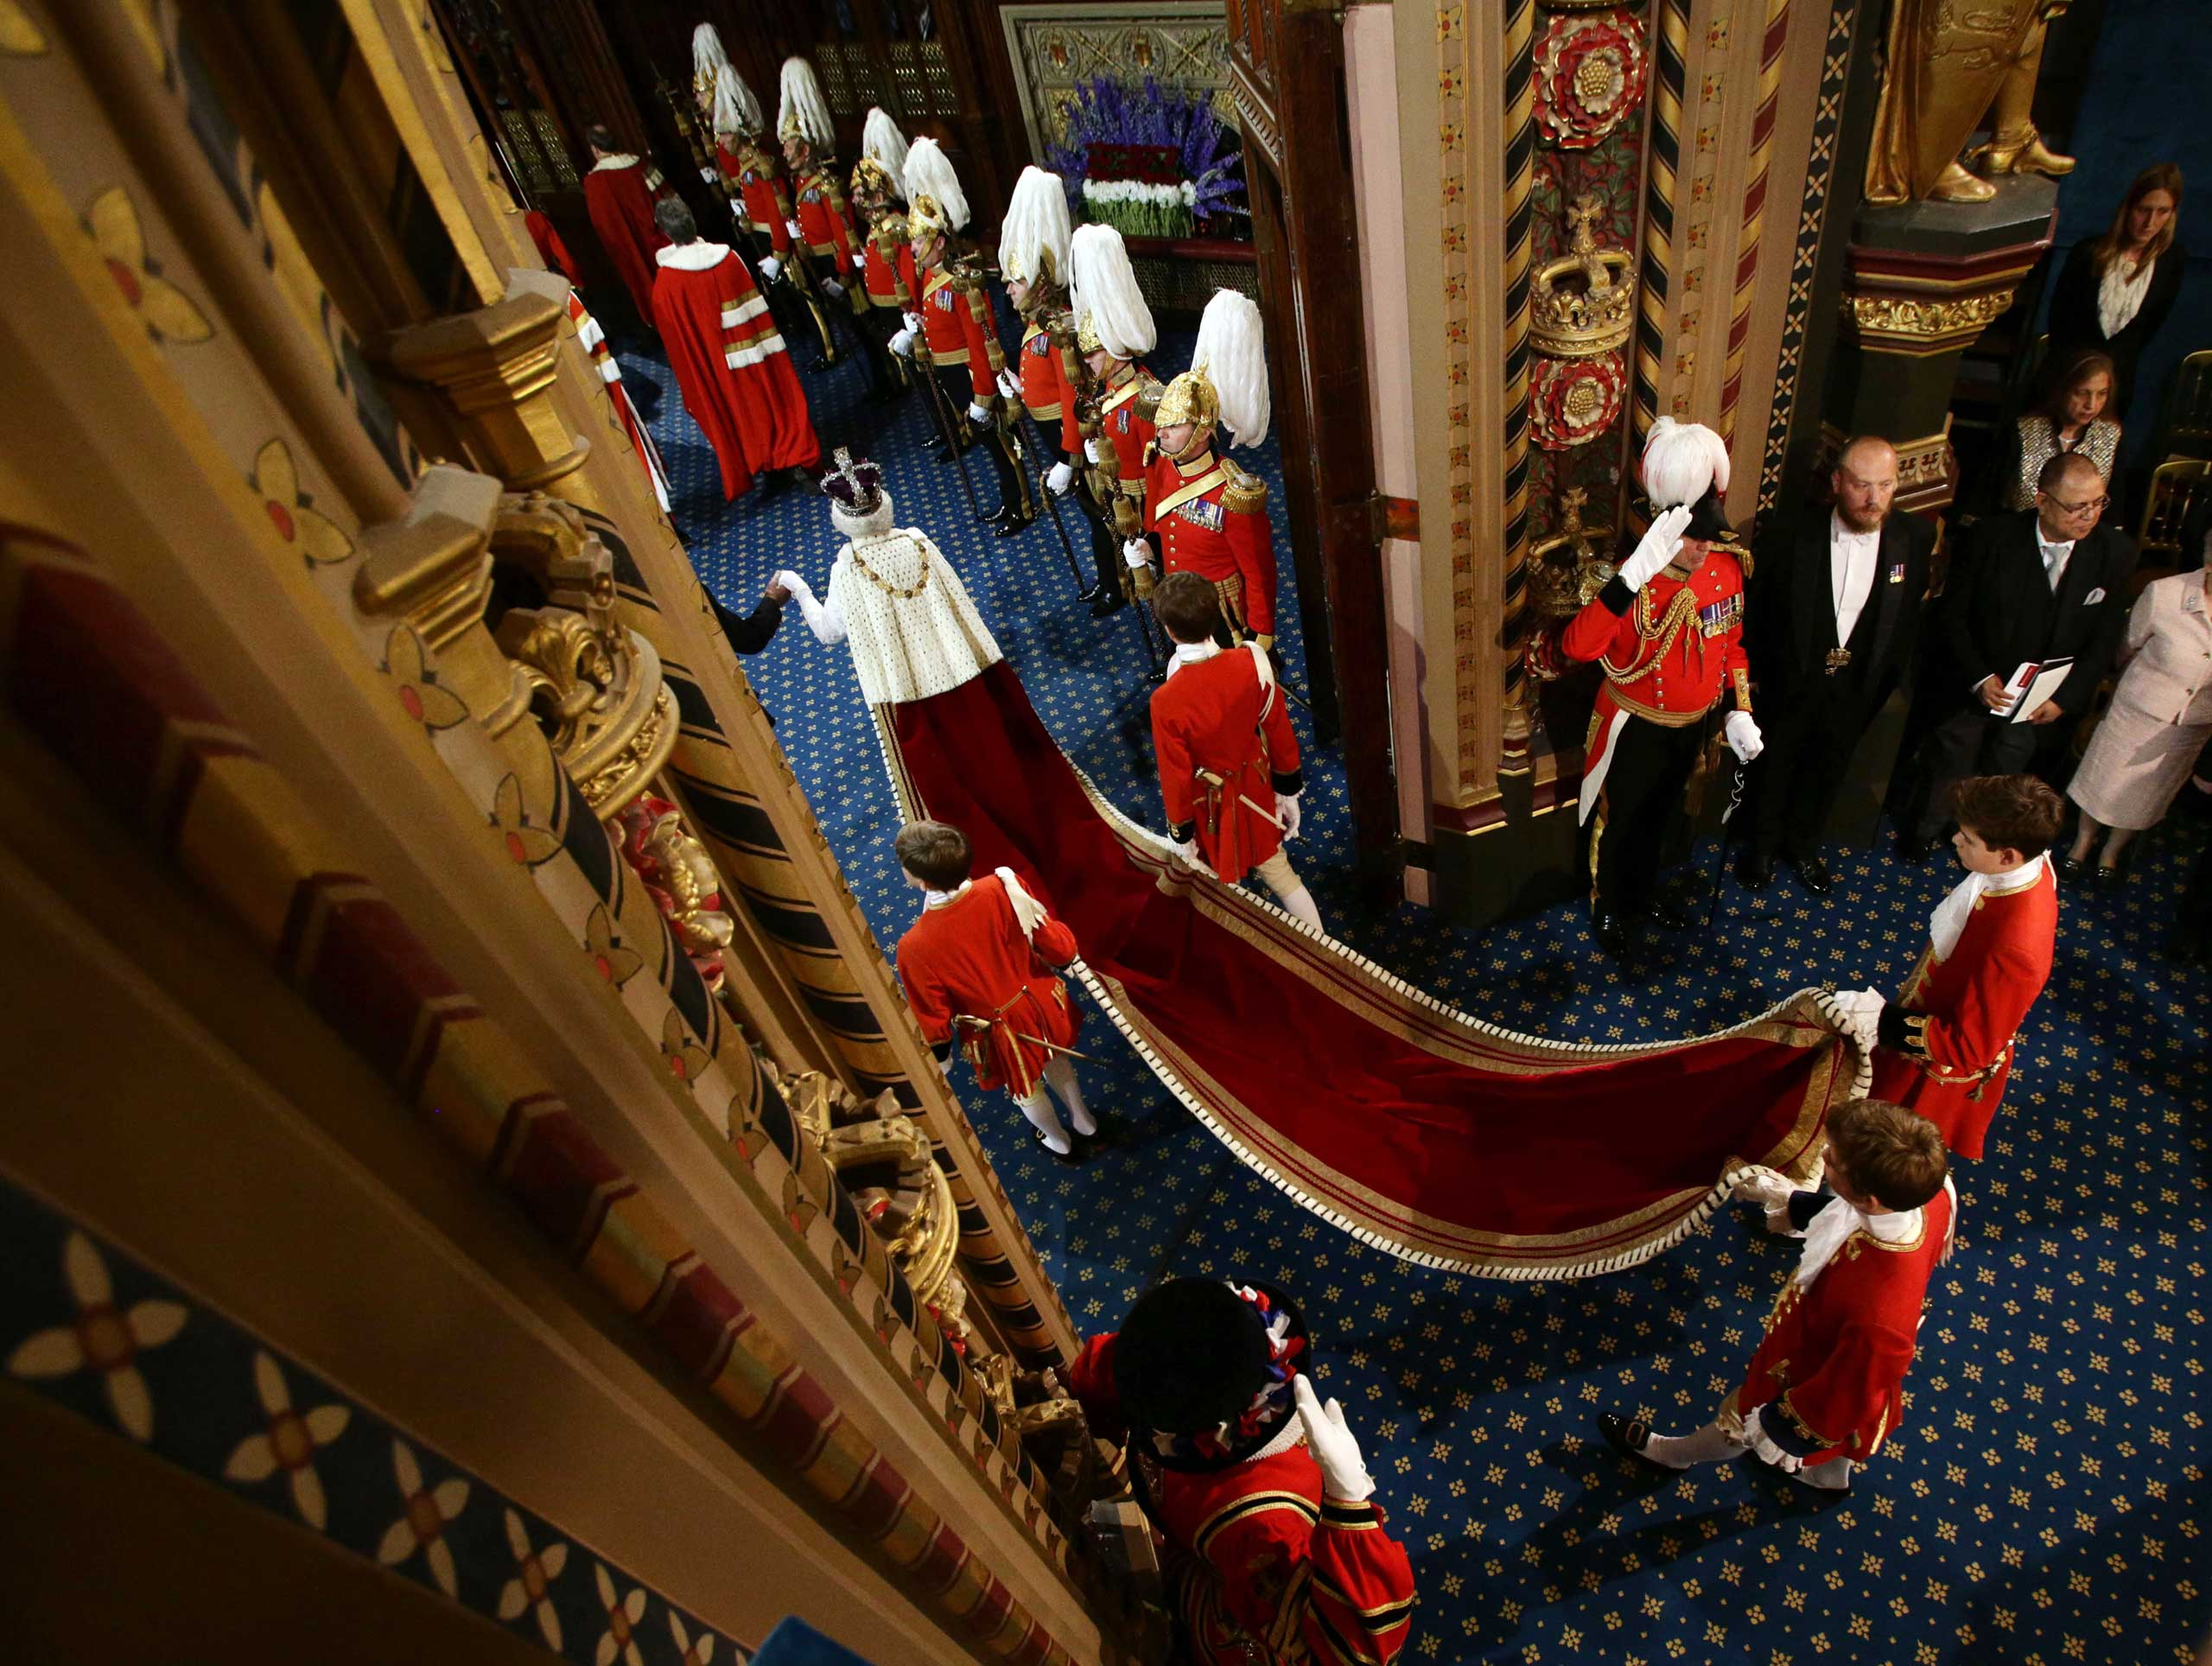 Queen Elizabeth II and the Prince Philip, Duke of Edinburgh proceed through the Royal Gallery during the State Opening of Parliament in the House of Lords at the Palace of Westminster in London in 2014.